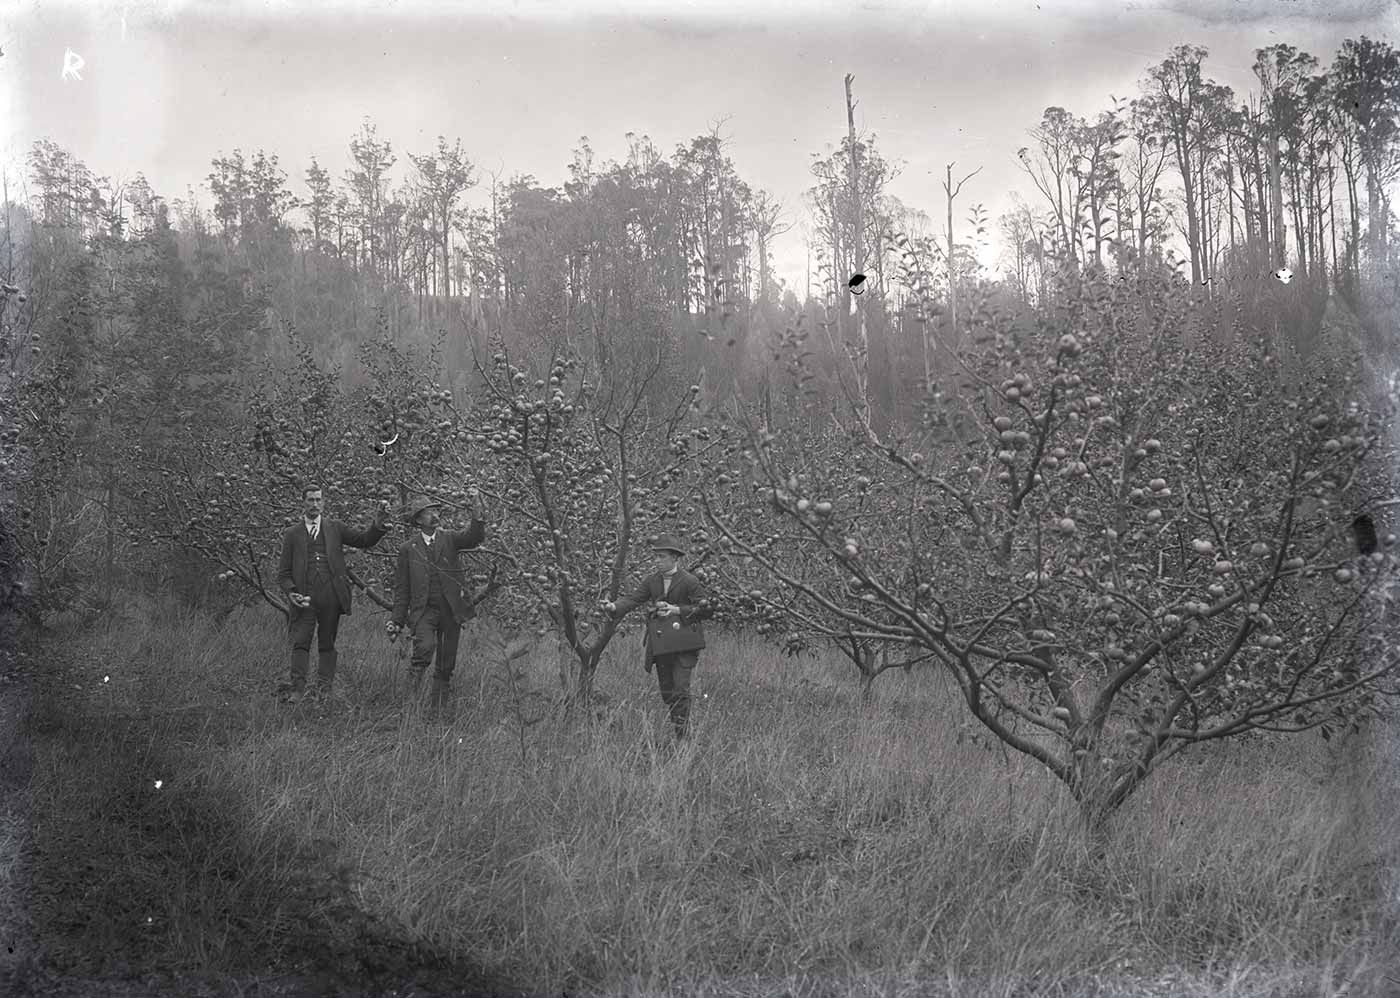 A photographic glass plate negative showing three men wearing suits and amongst fruit trees. The capital letter 'R' is etched in the top left-hand corner. - click to view larger image